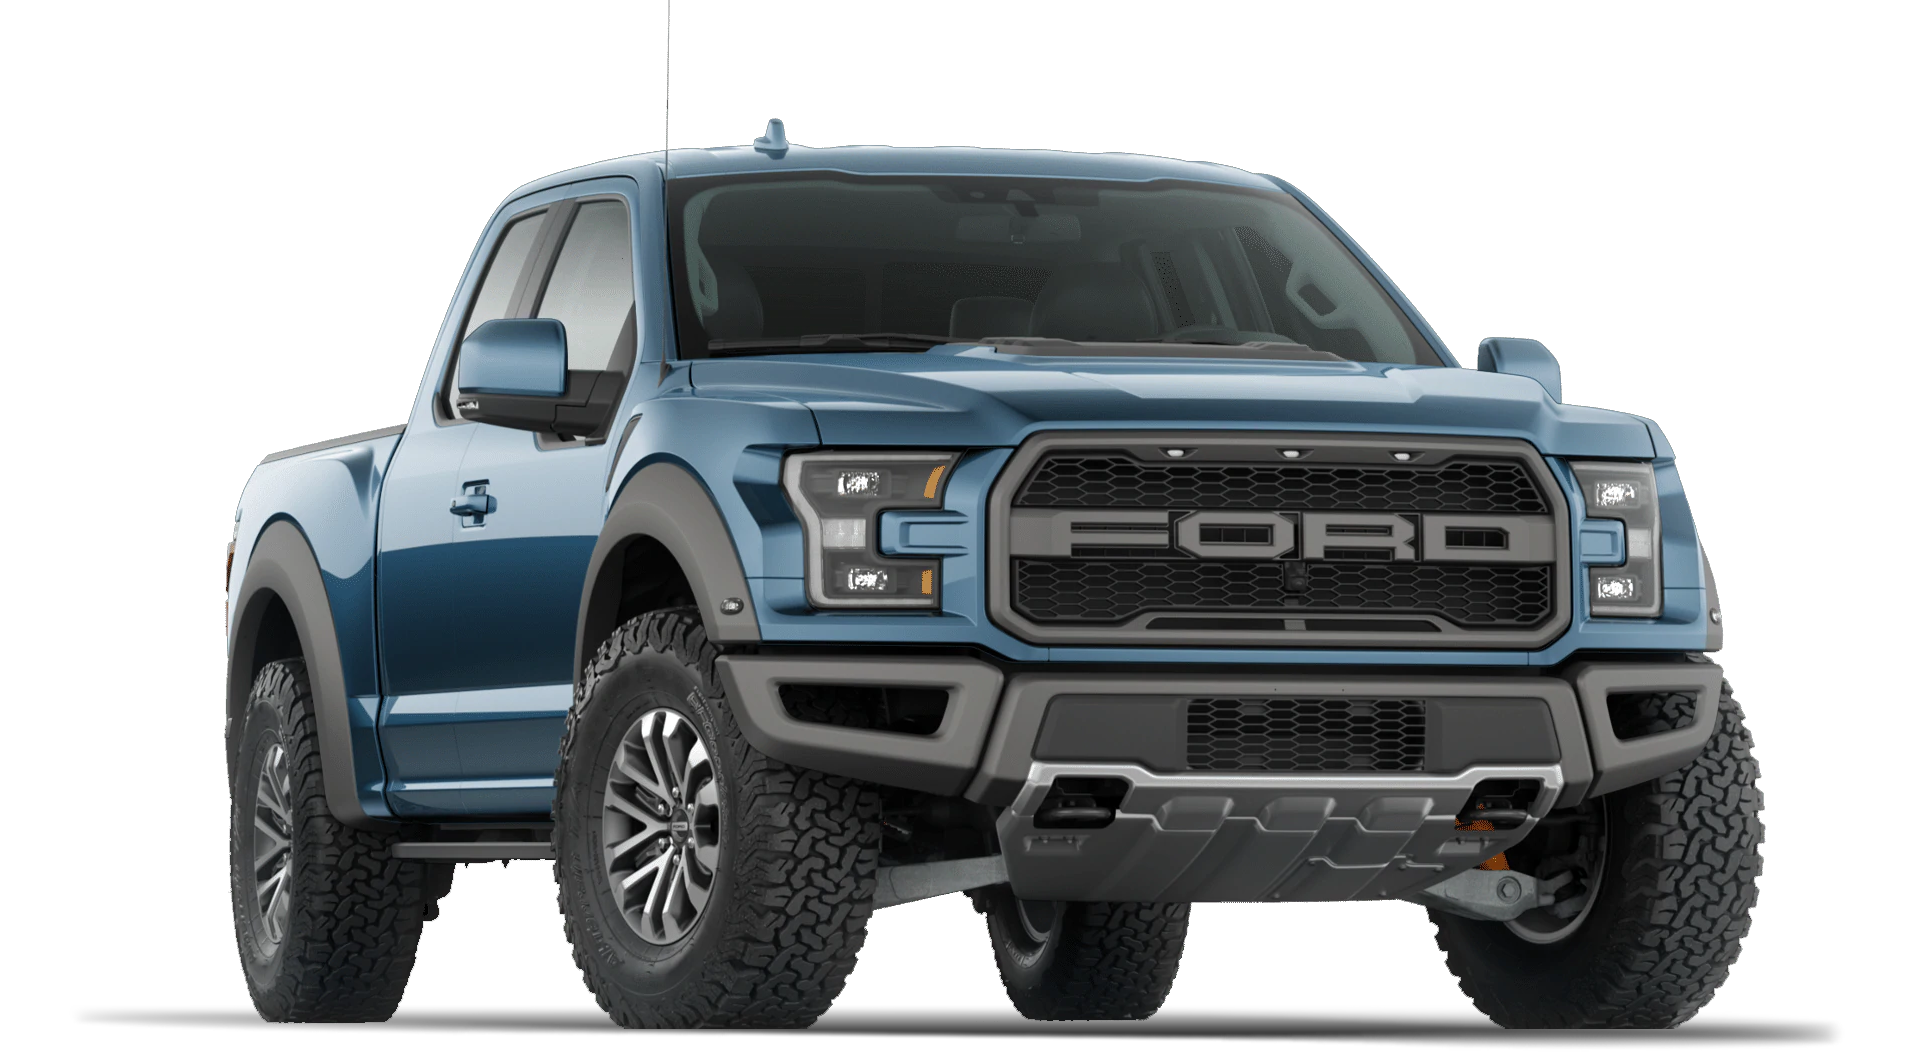 2020 Ford F150 Raptor show with Super Cab in Ford Performance Blue and 802A Luxury Package